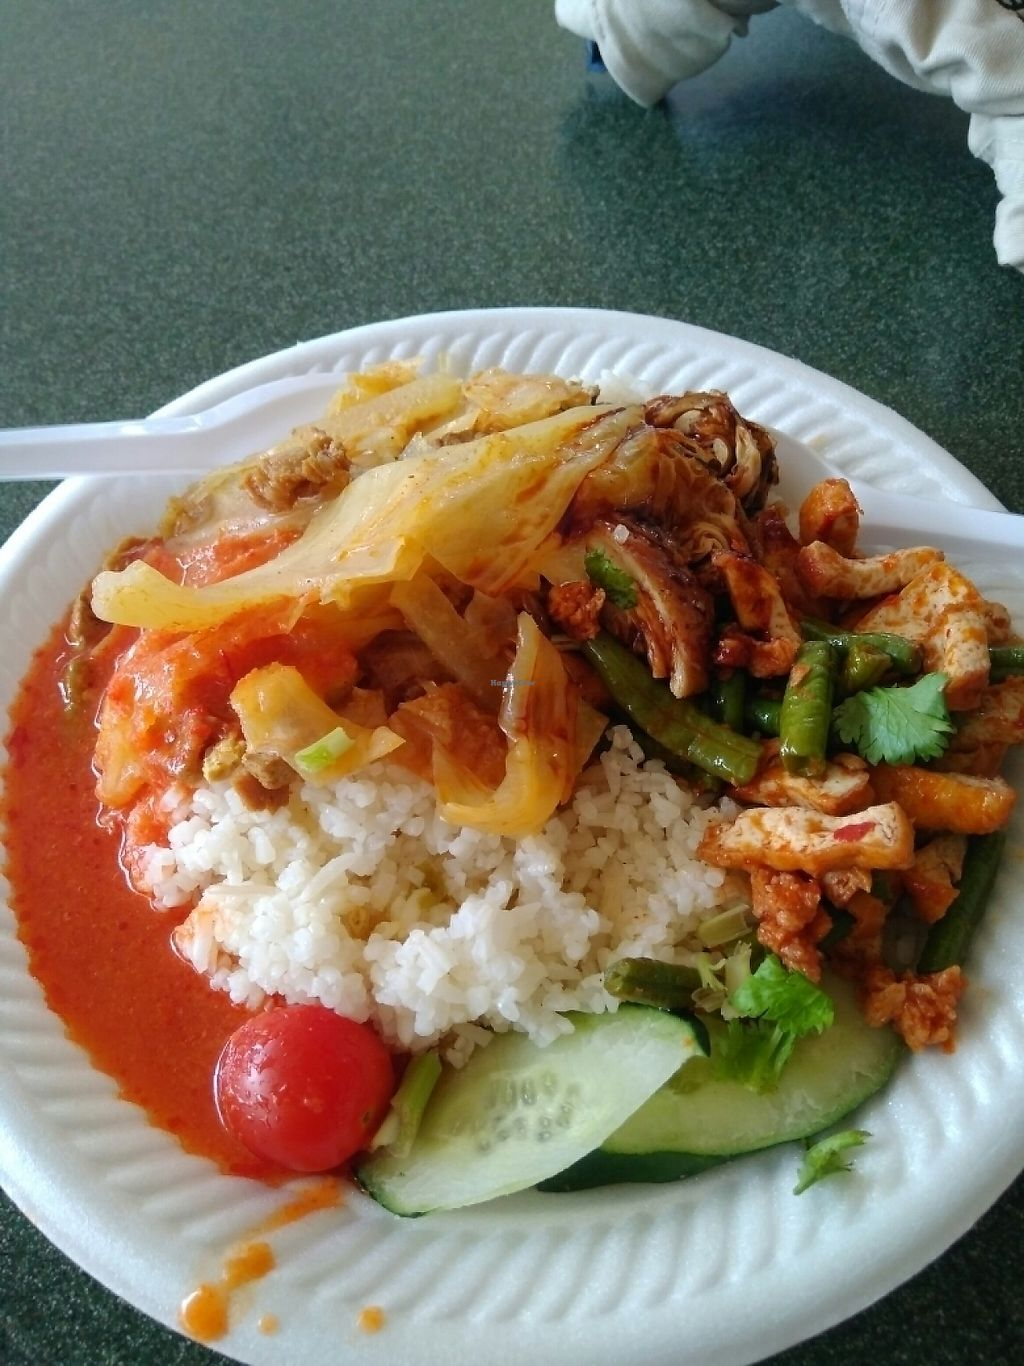 """Photo of Xiang Yuan  by <a href=""""/members/profile/RichardLee"""">RichardLee</a> <br/>Chicken Rice with added curry vegetables <br/> May 12, 2017  - <a href='/contact/abuse/image/91005/257984'>Report</a>"""